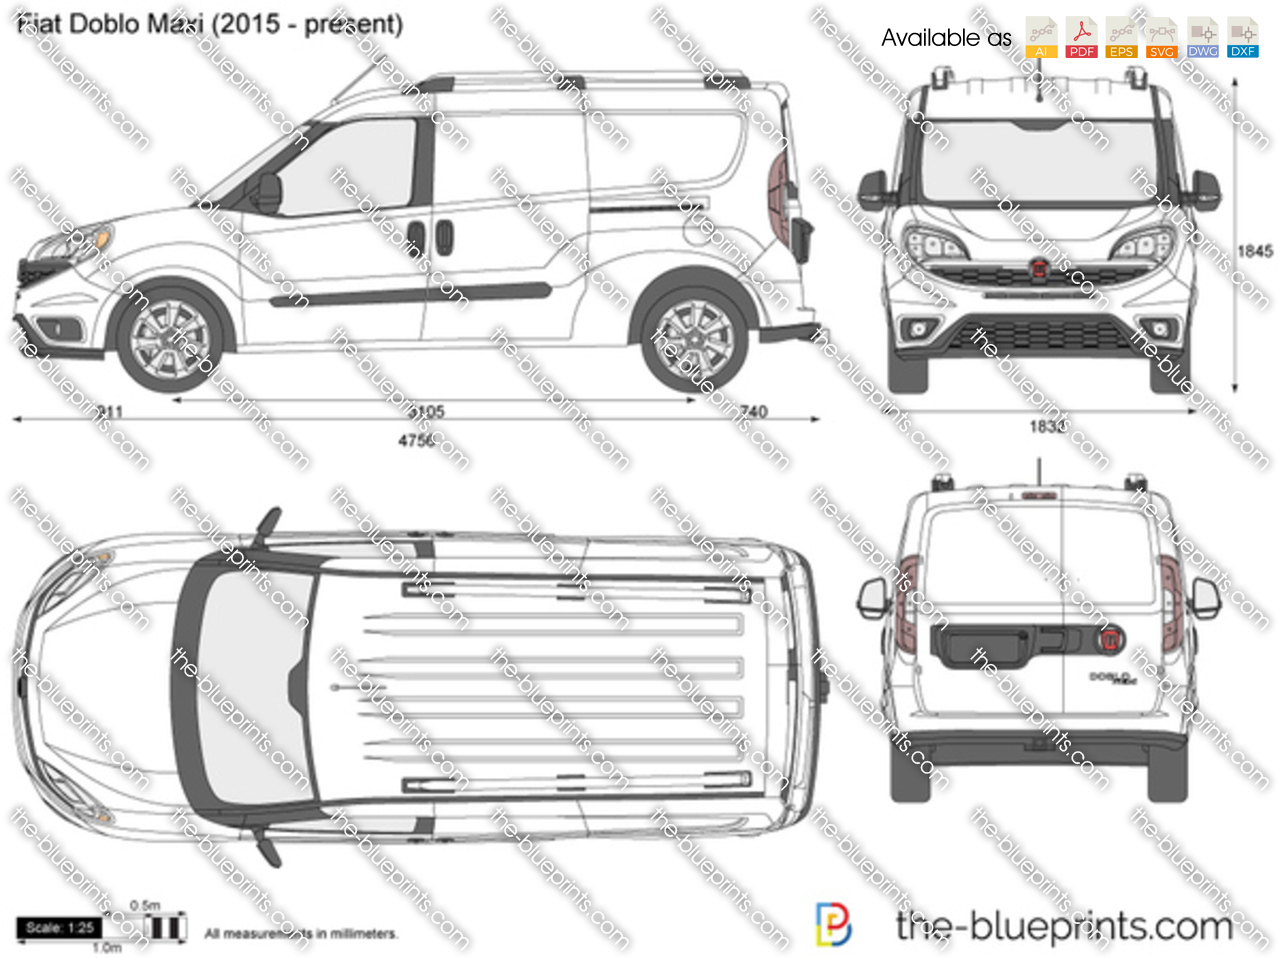 Fiat doblo lwb maxi vector drawing fiat doblo lwb maxi malvernweather Choice Image